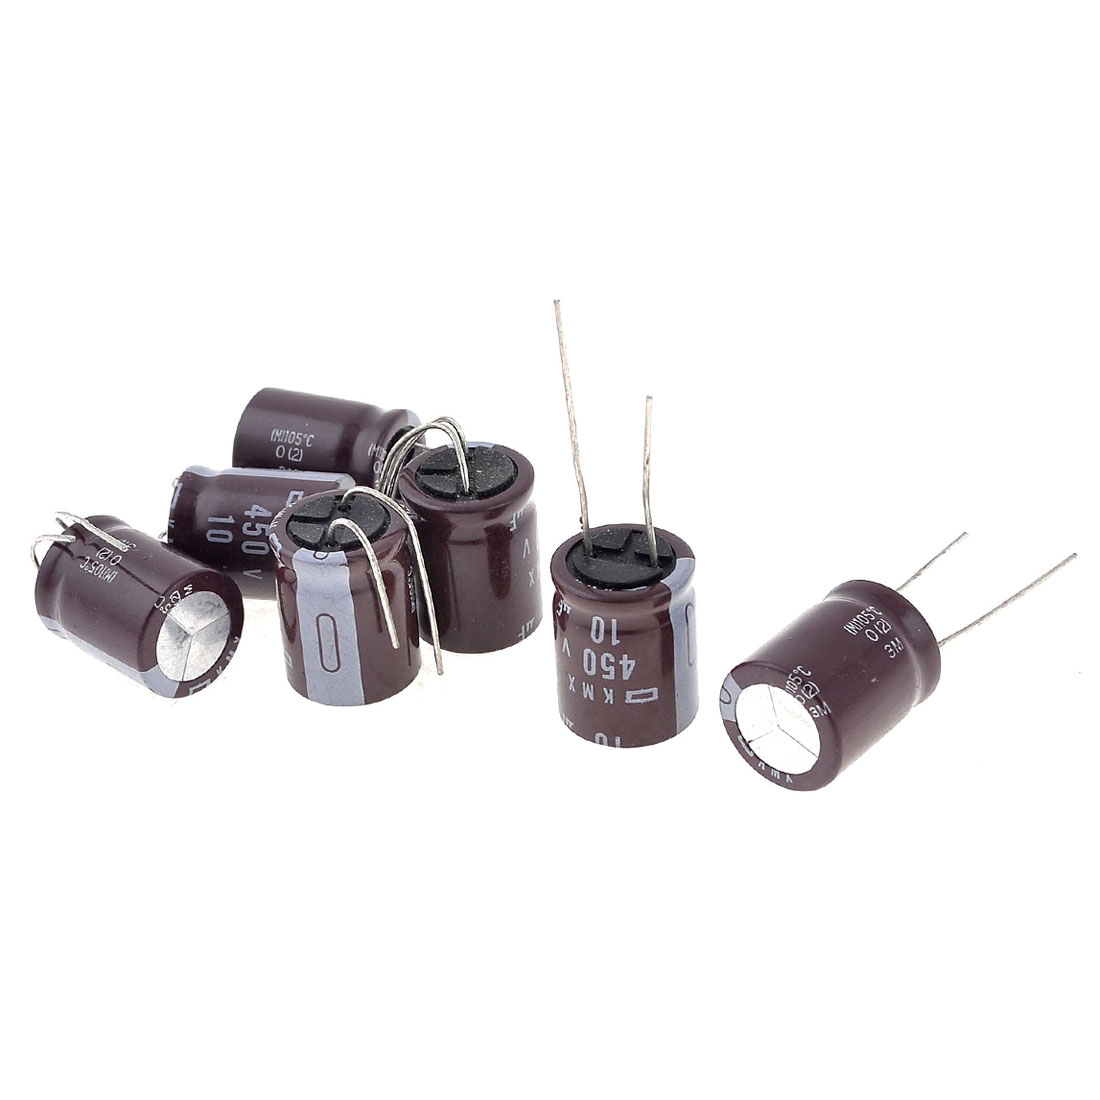 7 Pieces 10uF 450V 2 Terminals Cylinder Electrolytic Capacitors